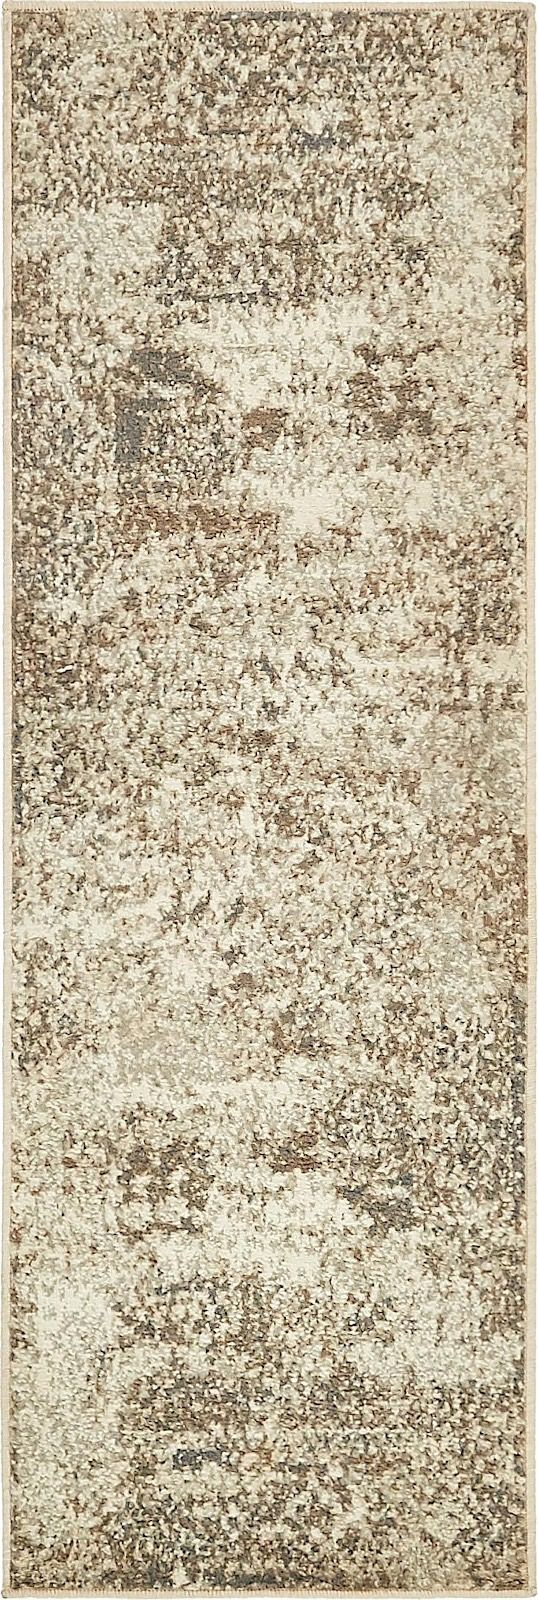 rugpal torvis contemporary area rug collection